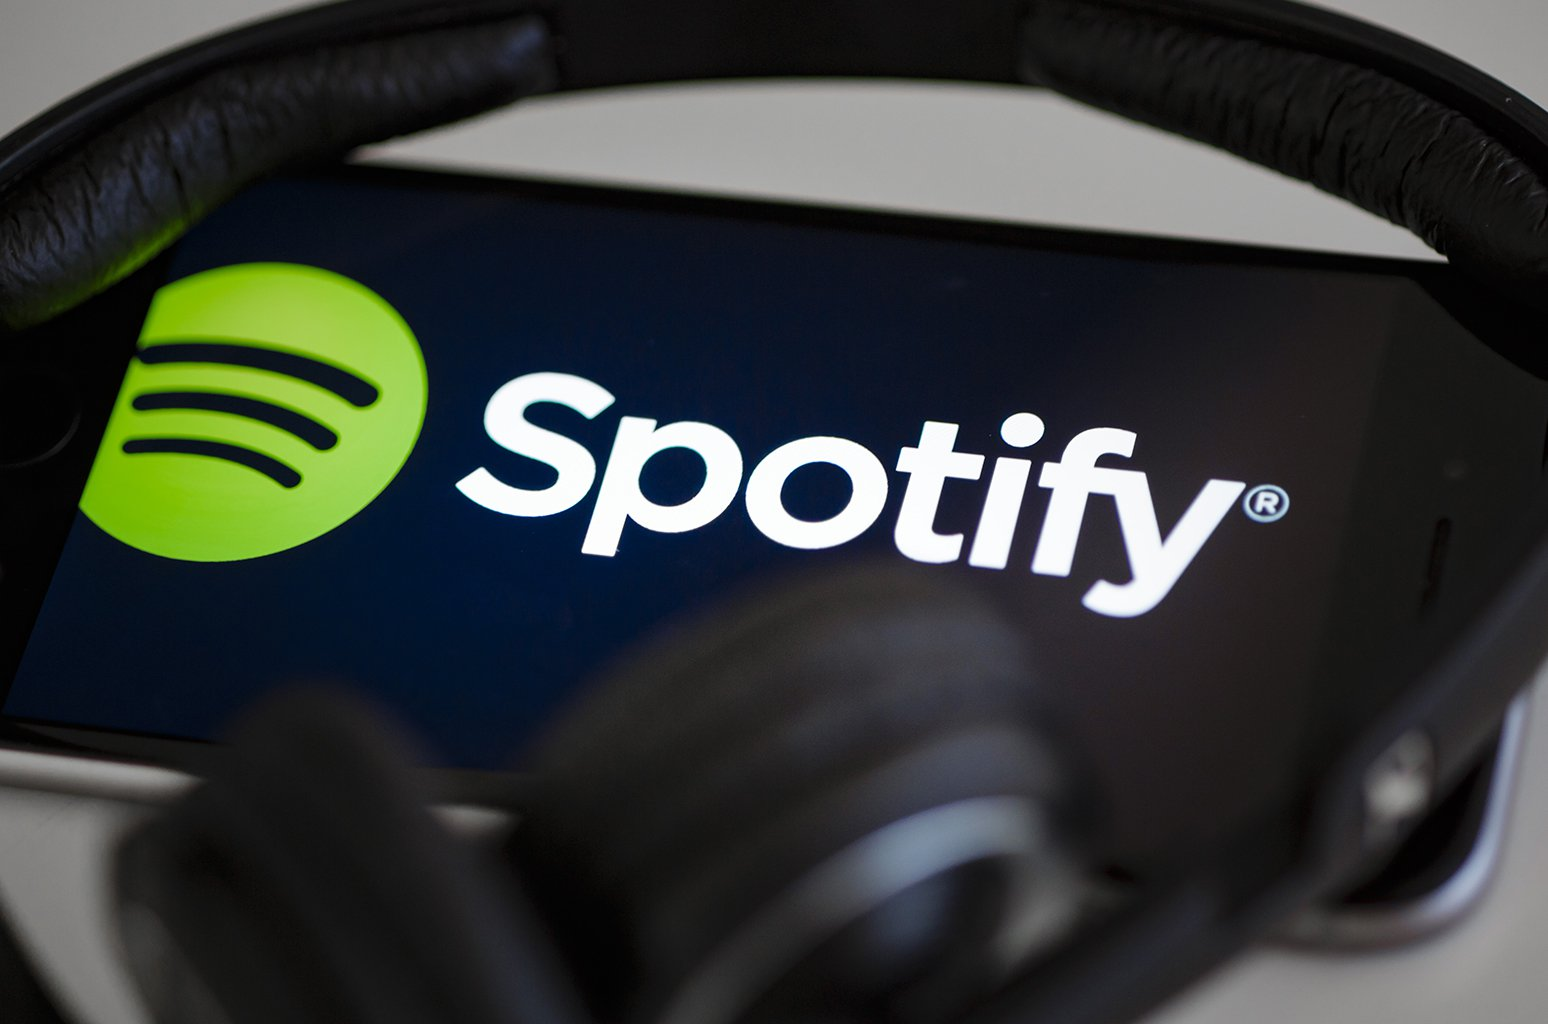 spotify adds new beta feature allowing independent artist to submit music for featured playlists